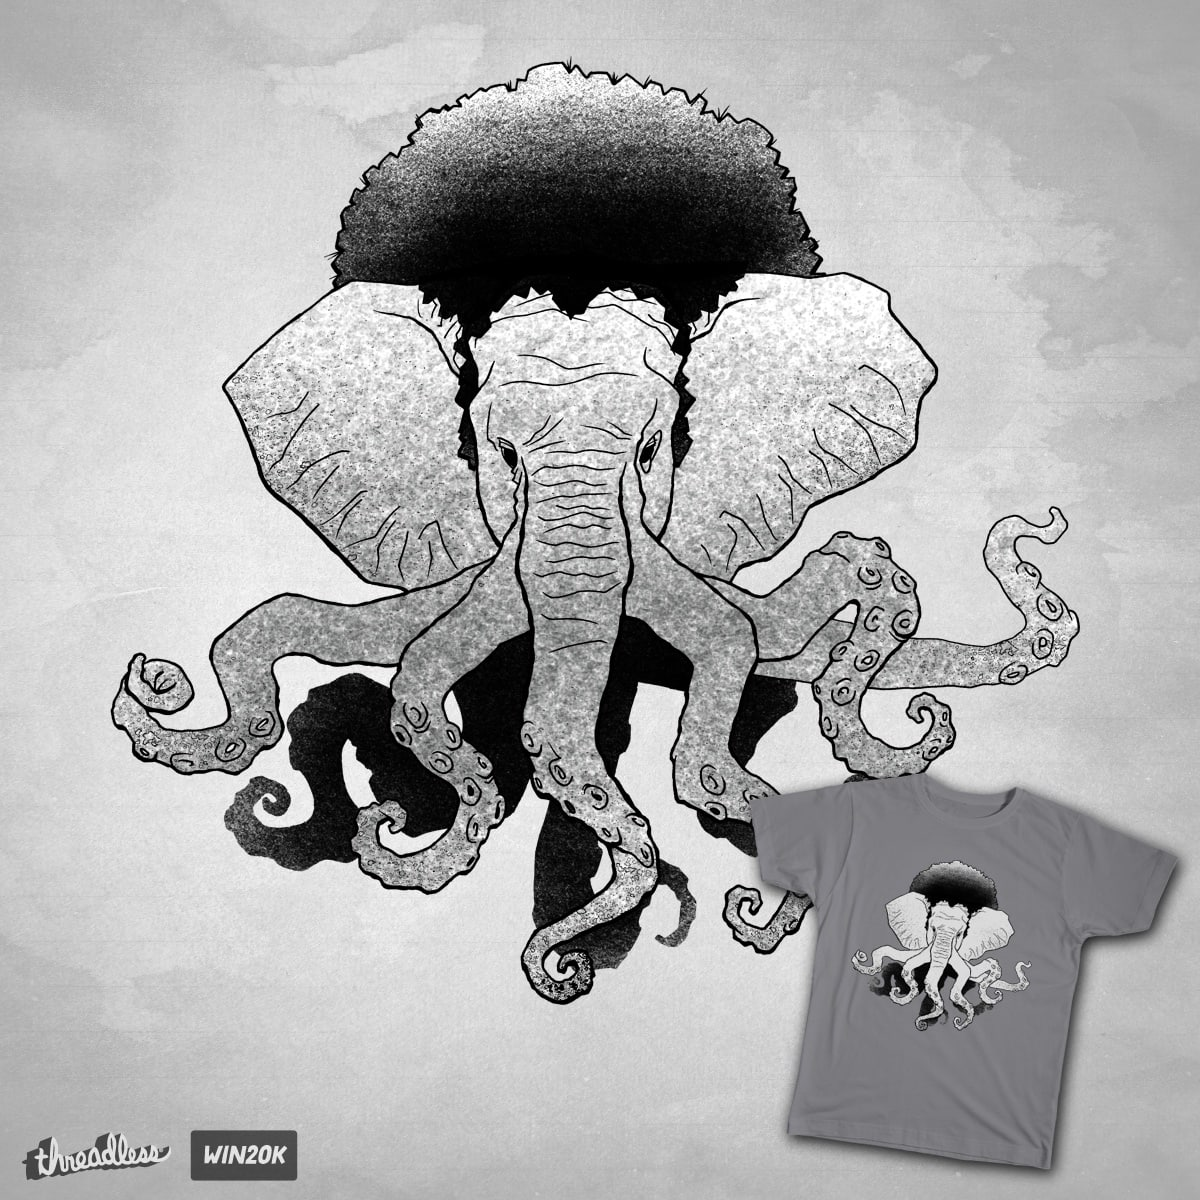 Elefunktopus! by Ohco on Threadless